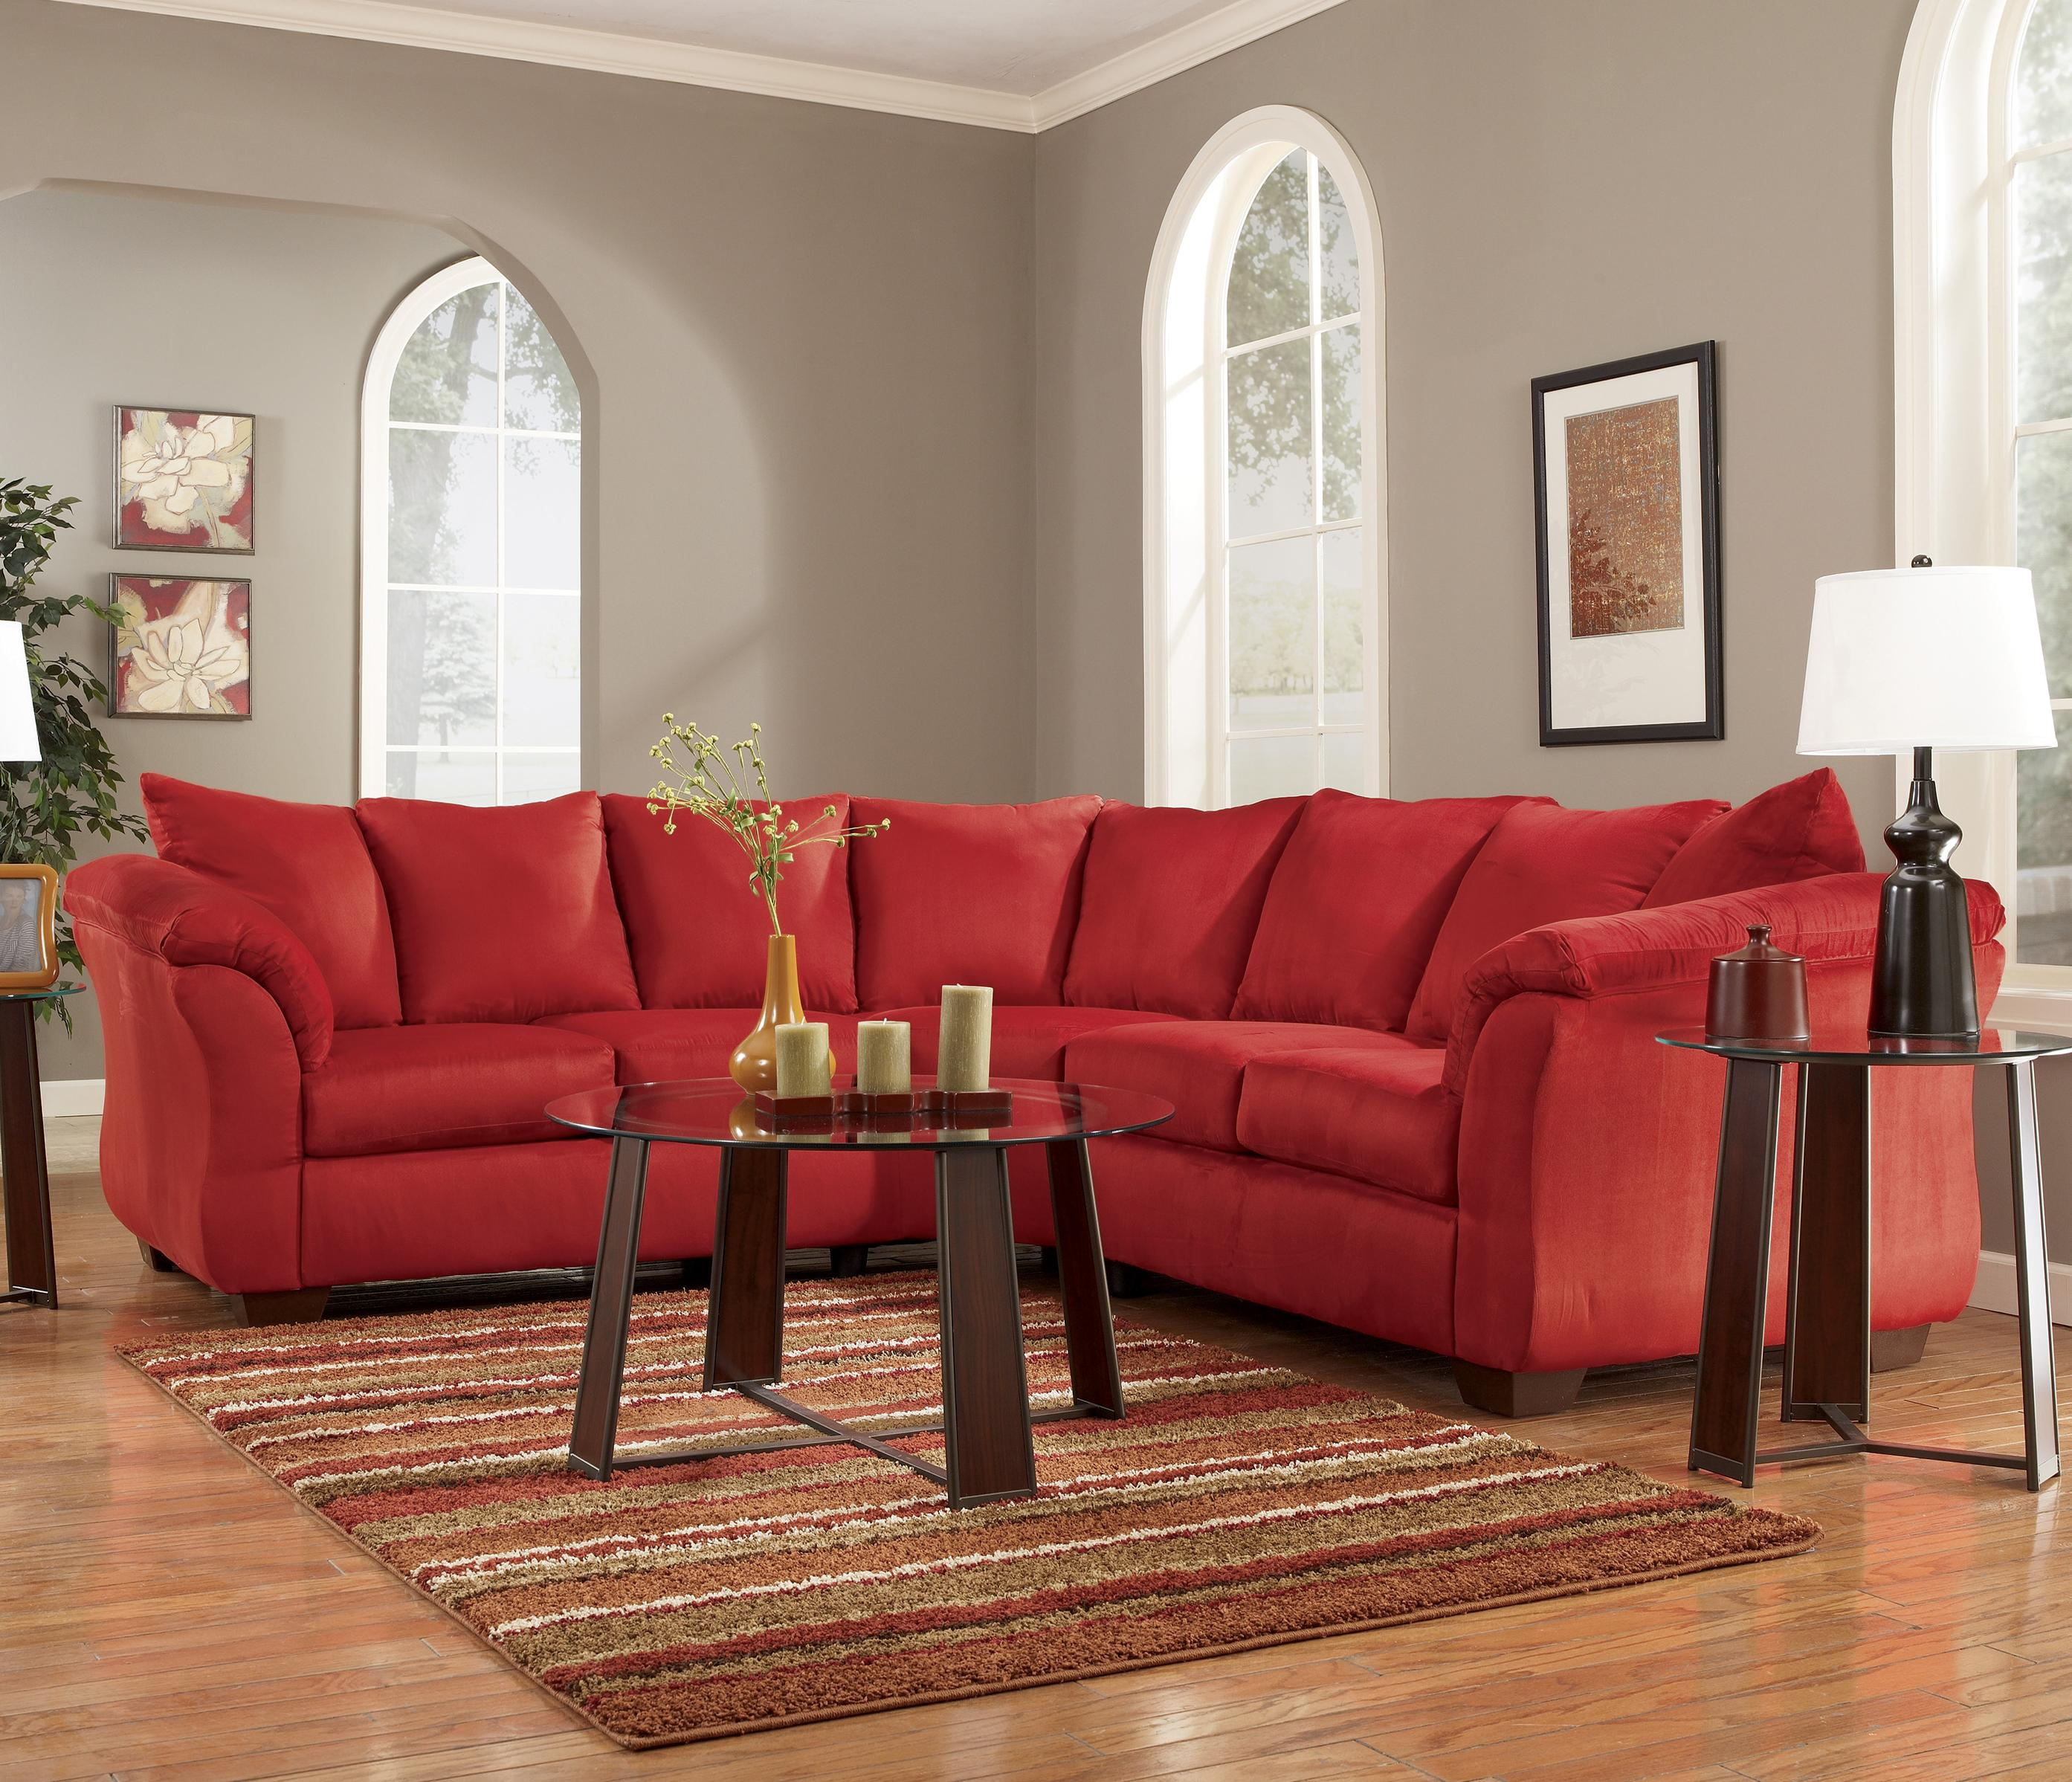 durango sectional red top ottoman view with leather of furniture sectionals